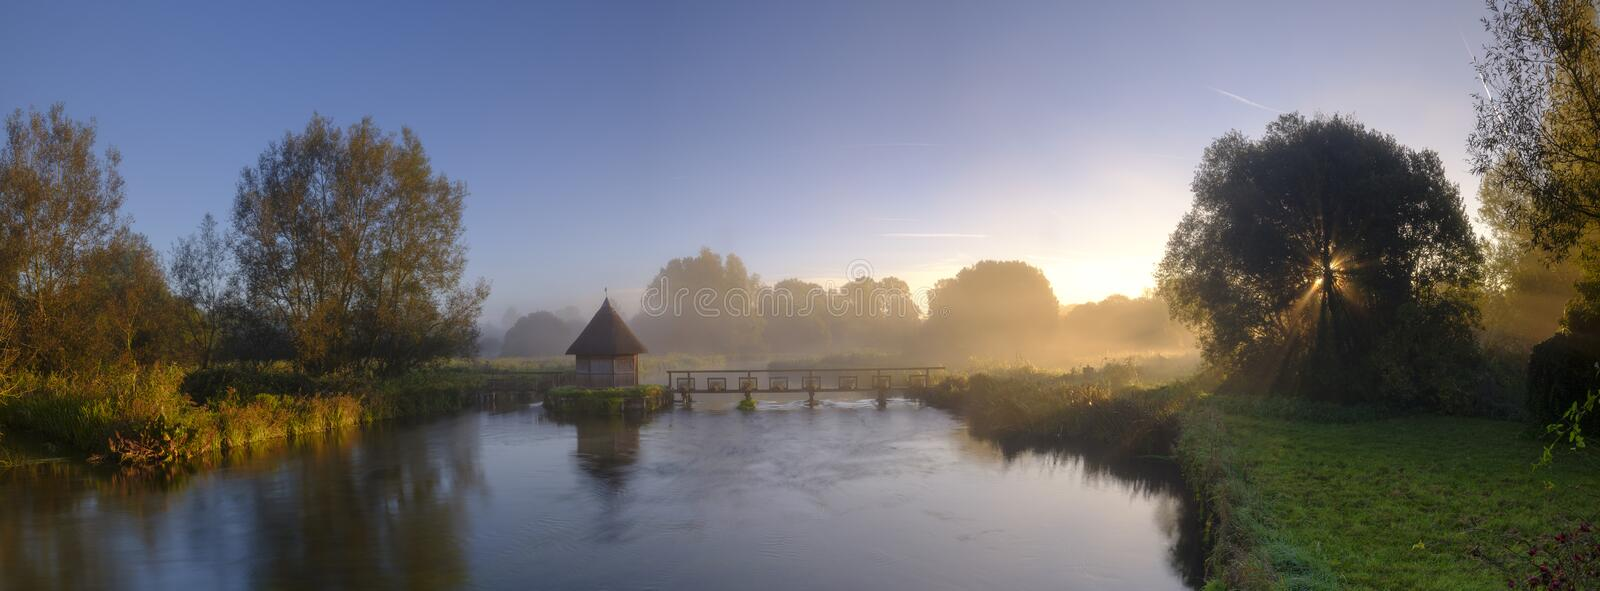 Autumn sunrise with mist on the Eel House traps on the River Test near Longstock, Hampshire, UK. Longstock, UK - September 2018: Autumn sunrise with mist on the royalty free stock images